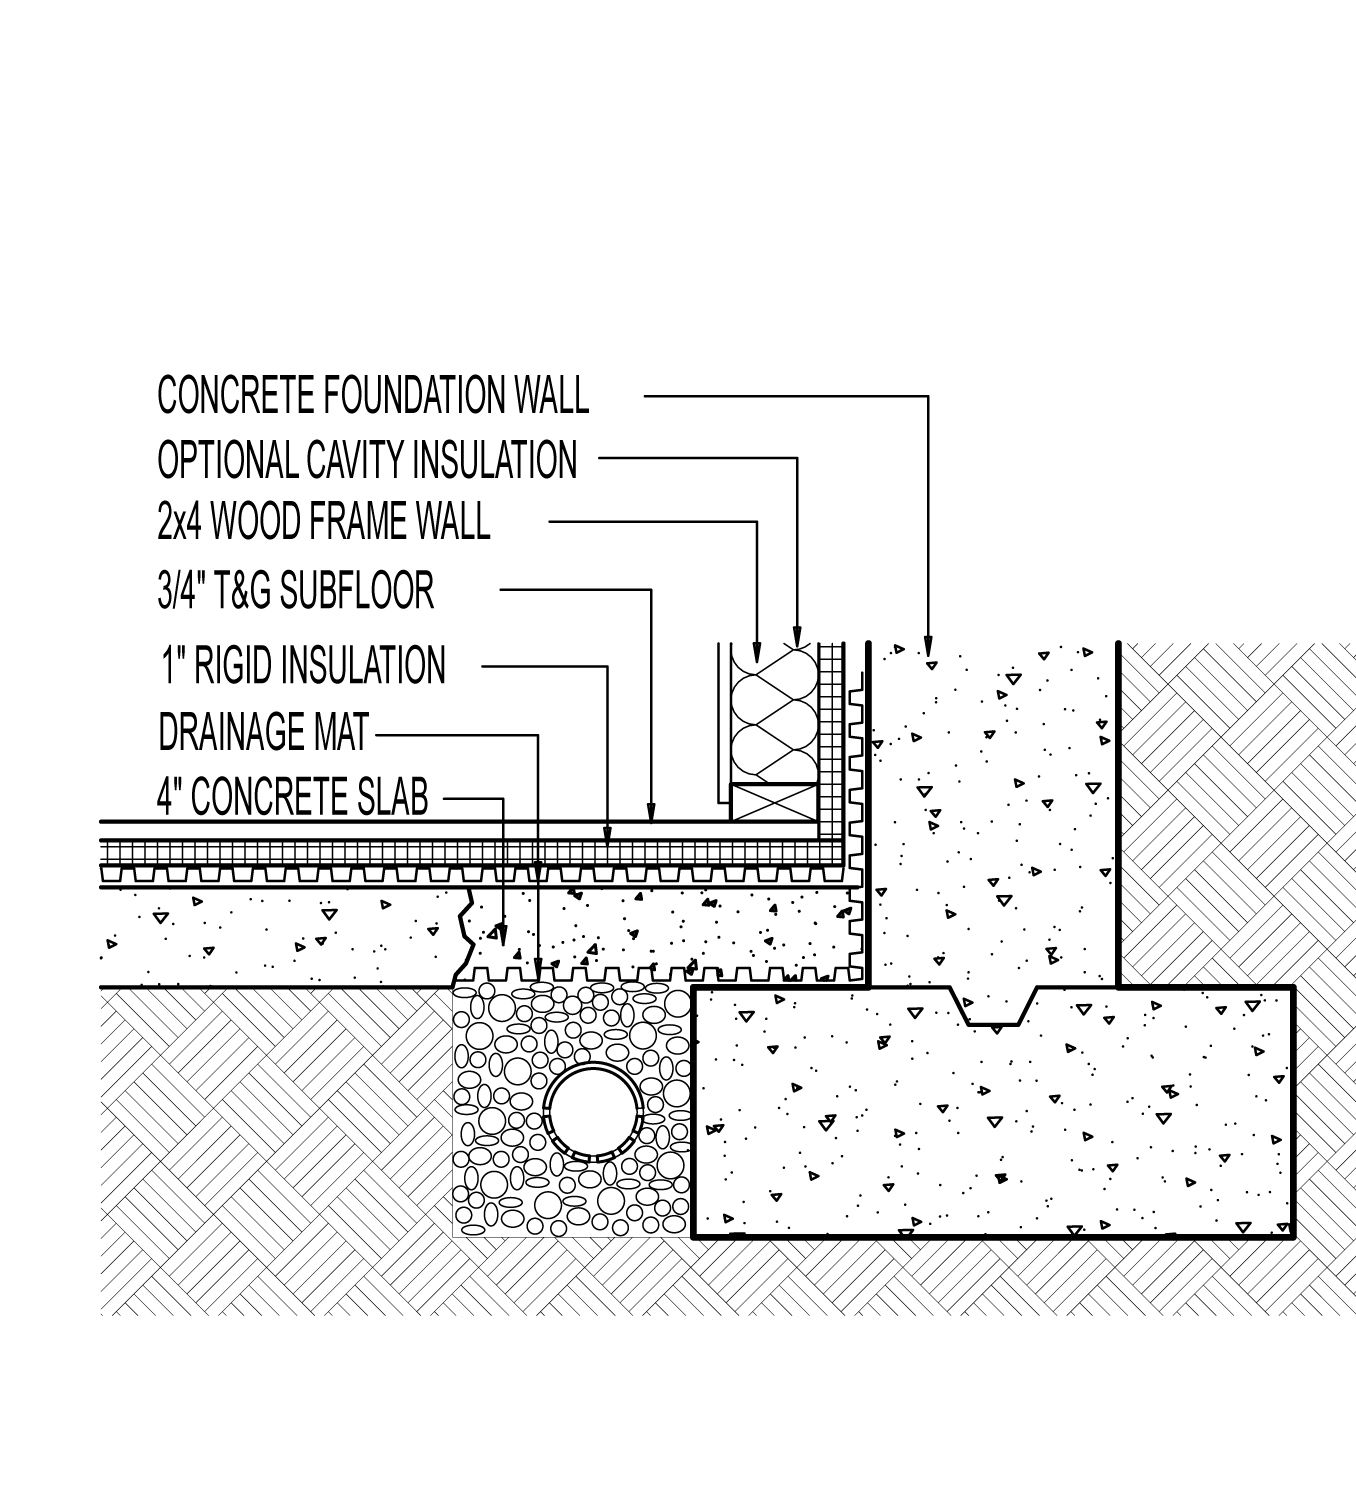 Superior This Detail Drawing Shows One Approach To Installing An Interior Footing  Drain And Above Slab